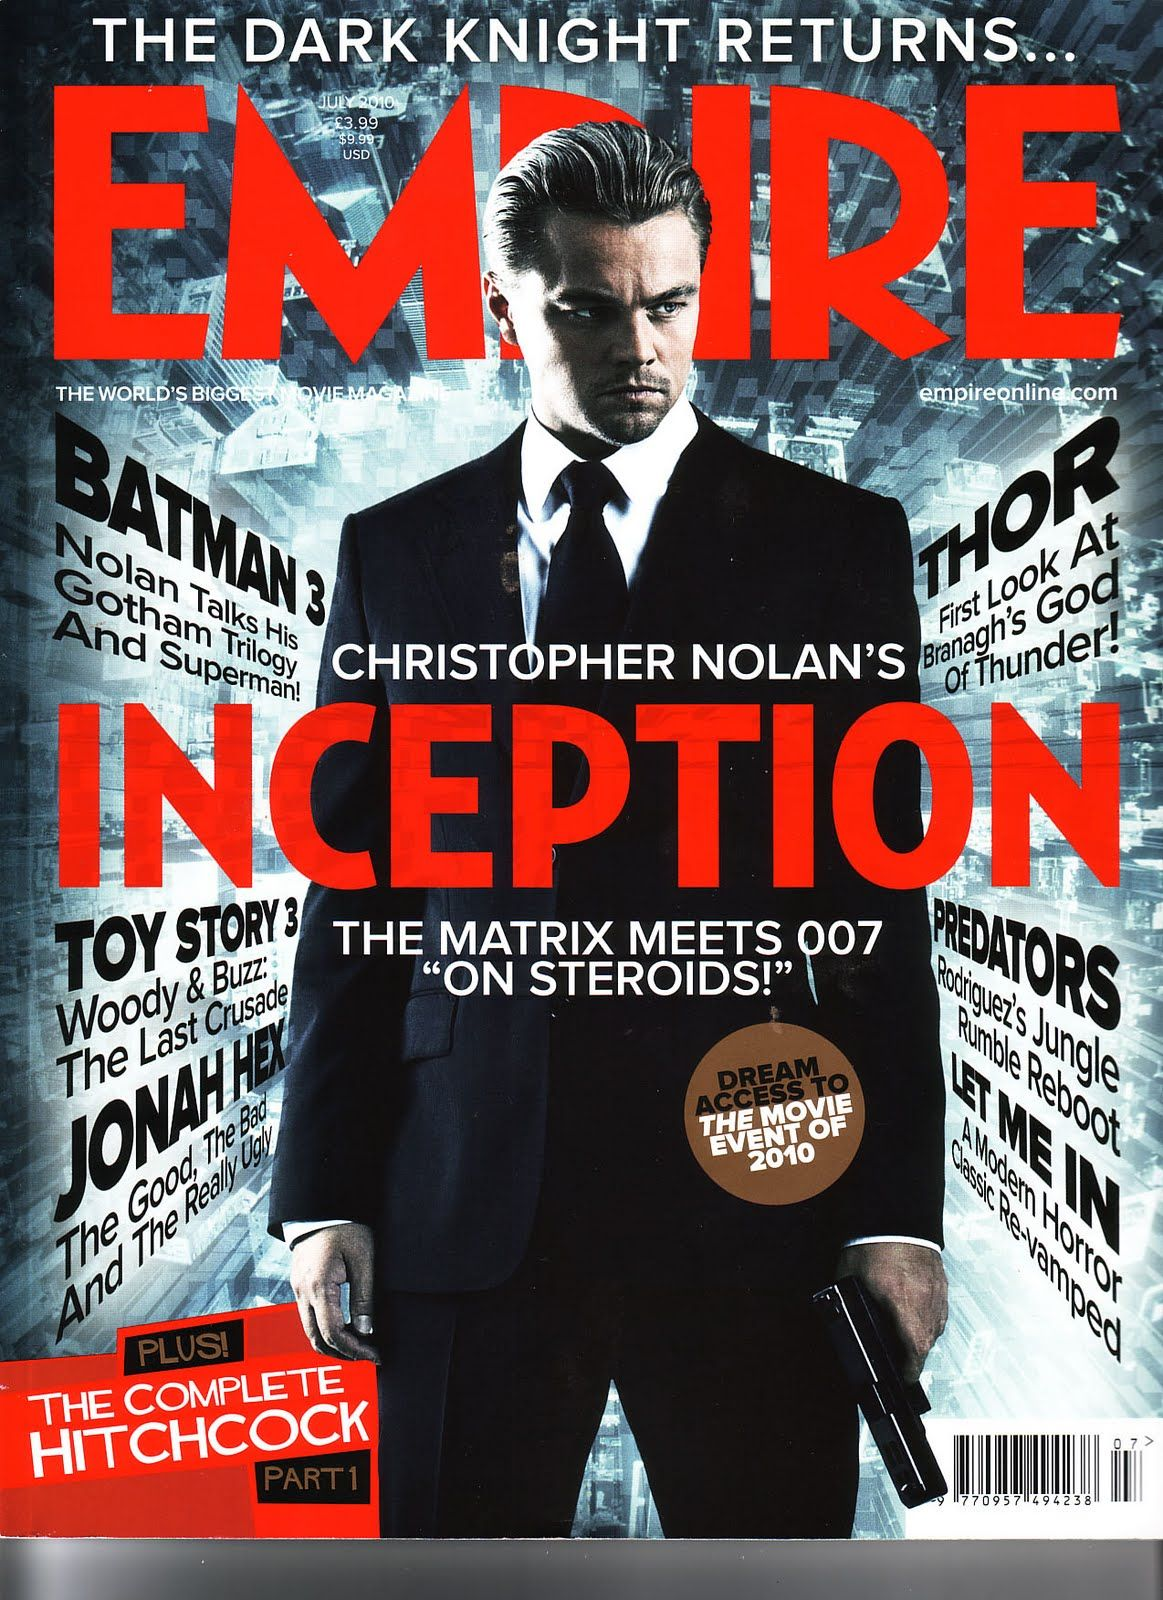 Inception is Christopher Nolan's latest visual and cerebral treat ...